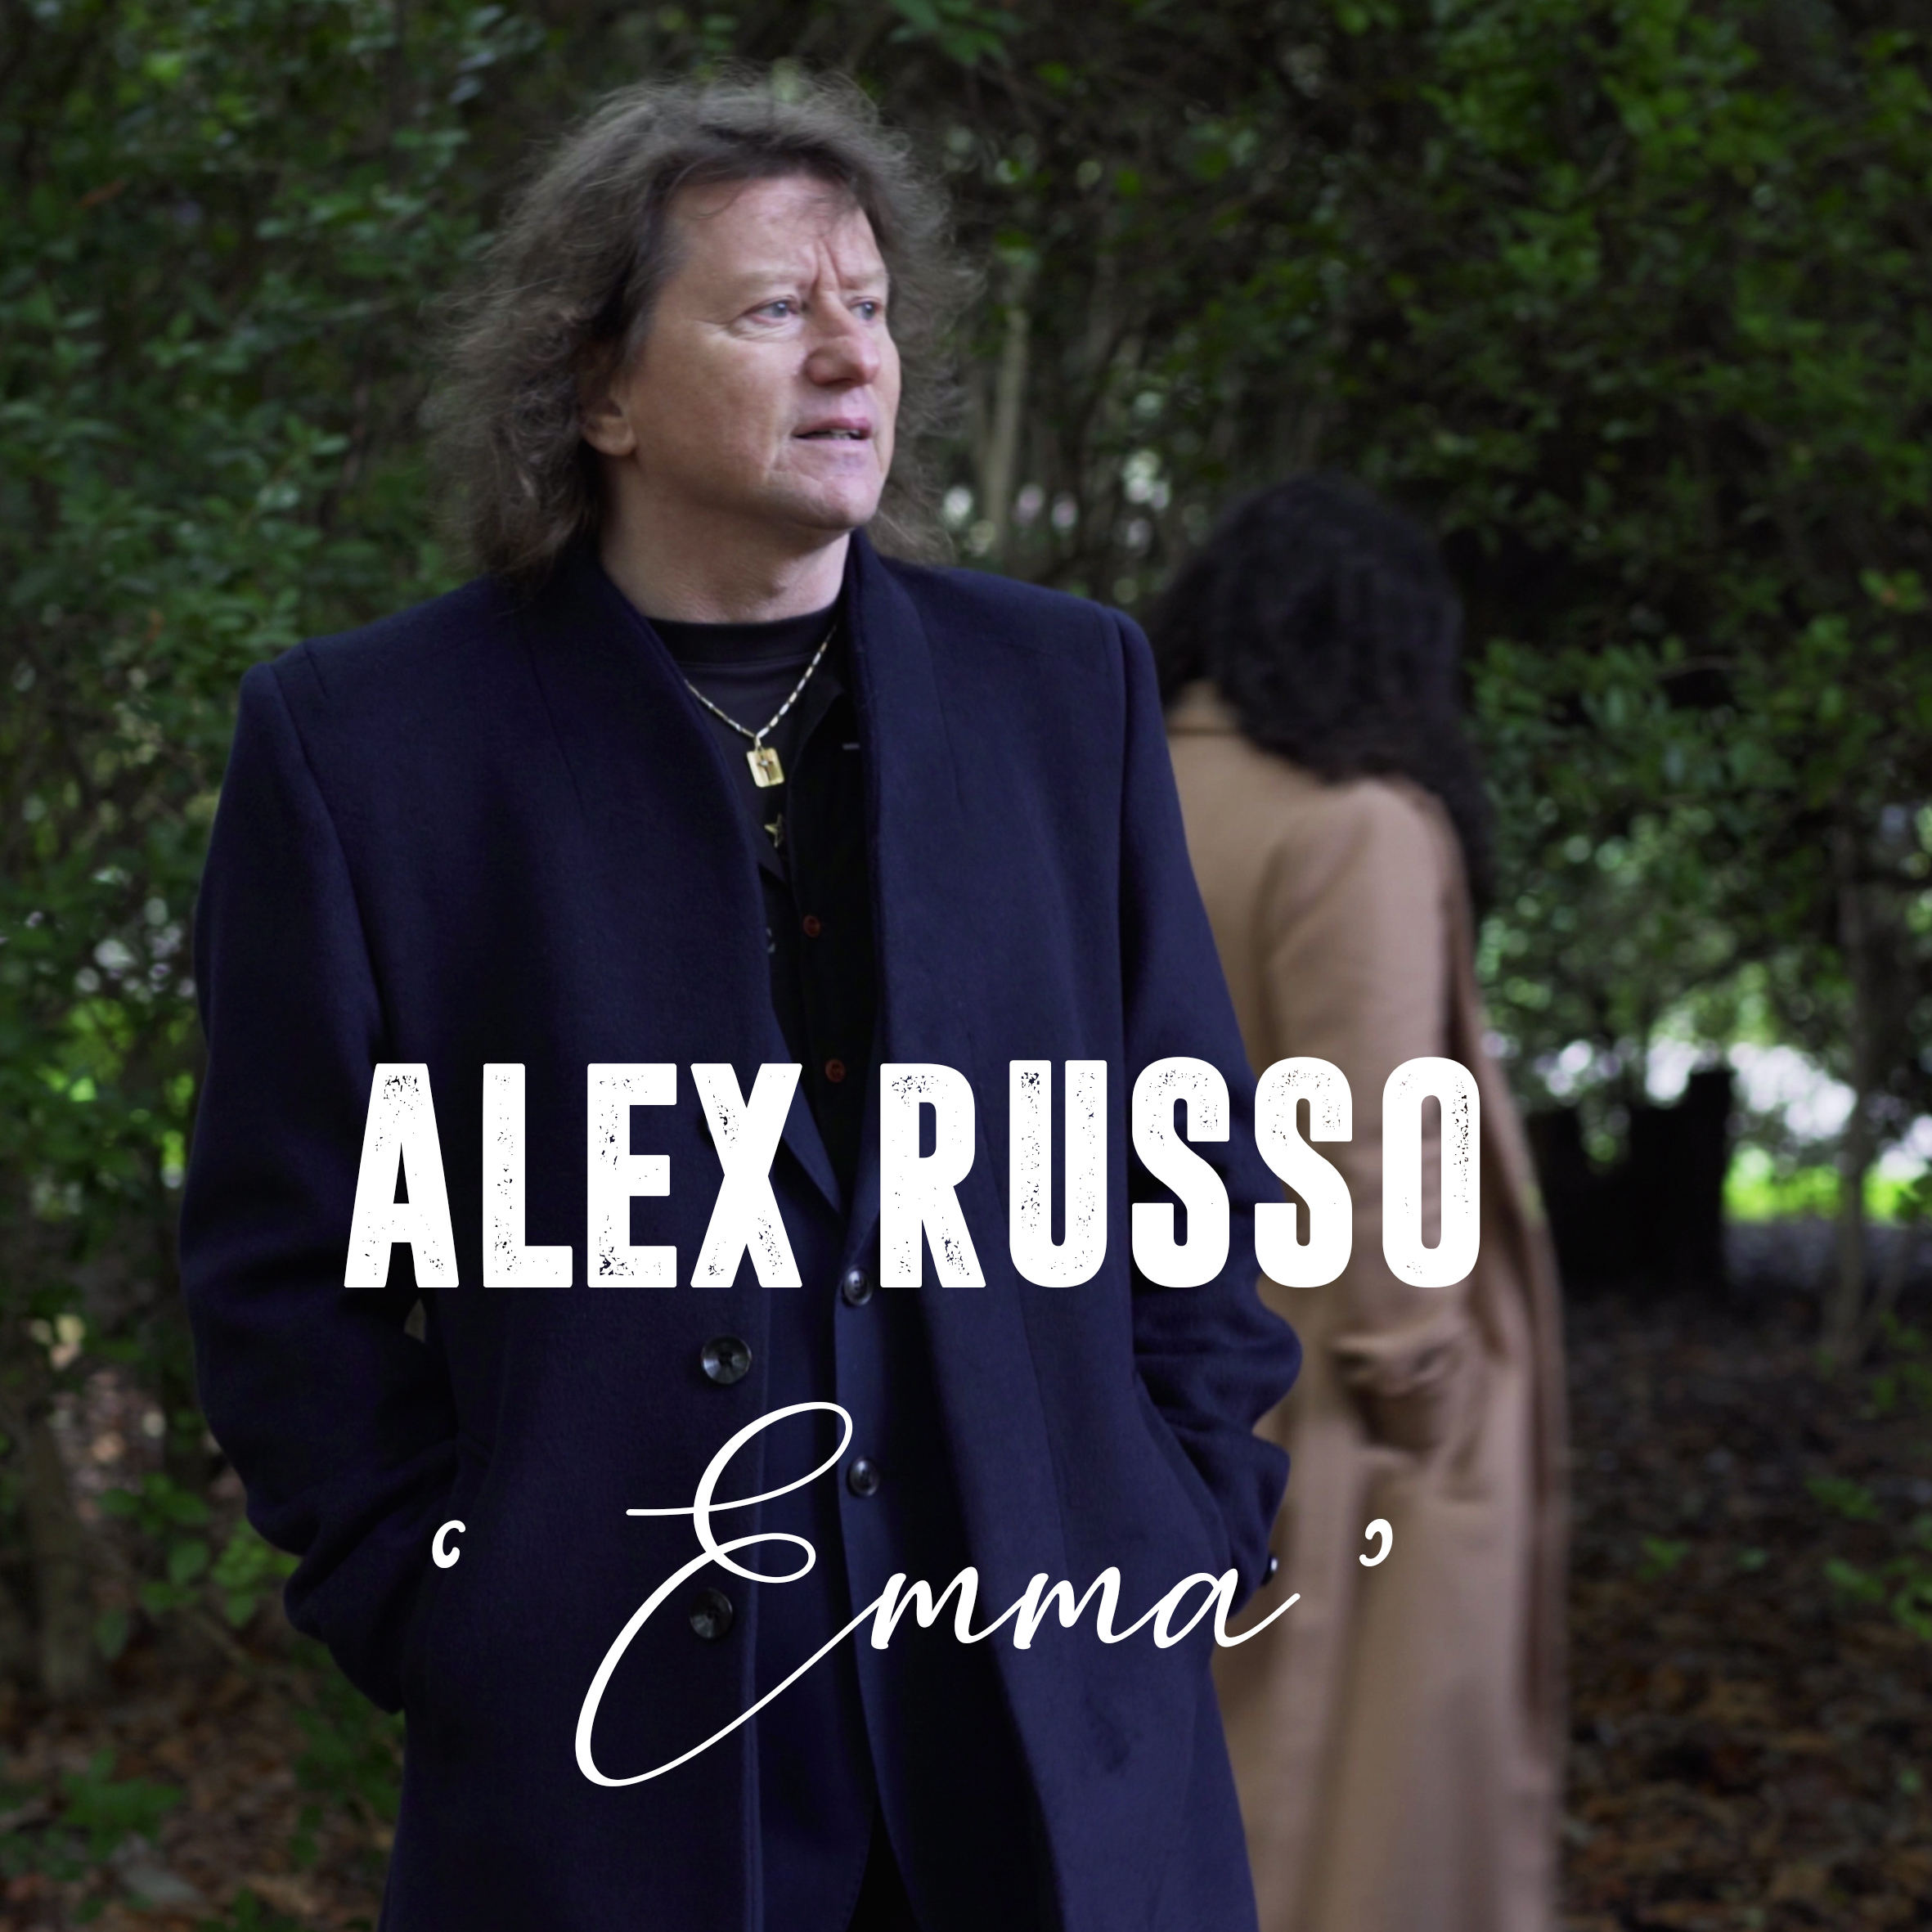 Italian Troubadour Alex Russo Steps Backs In Time Recalling When His First True Love Was  Pulled Apart In Emotional New Single 'Emma'